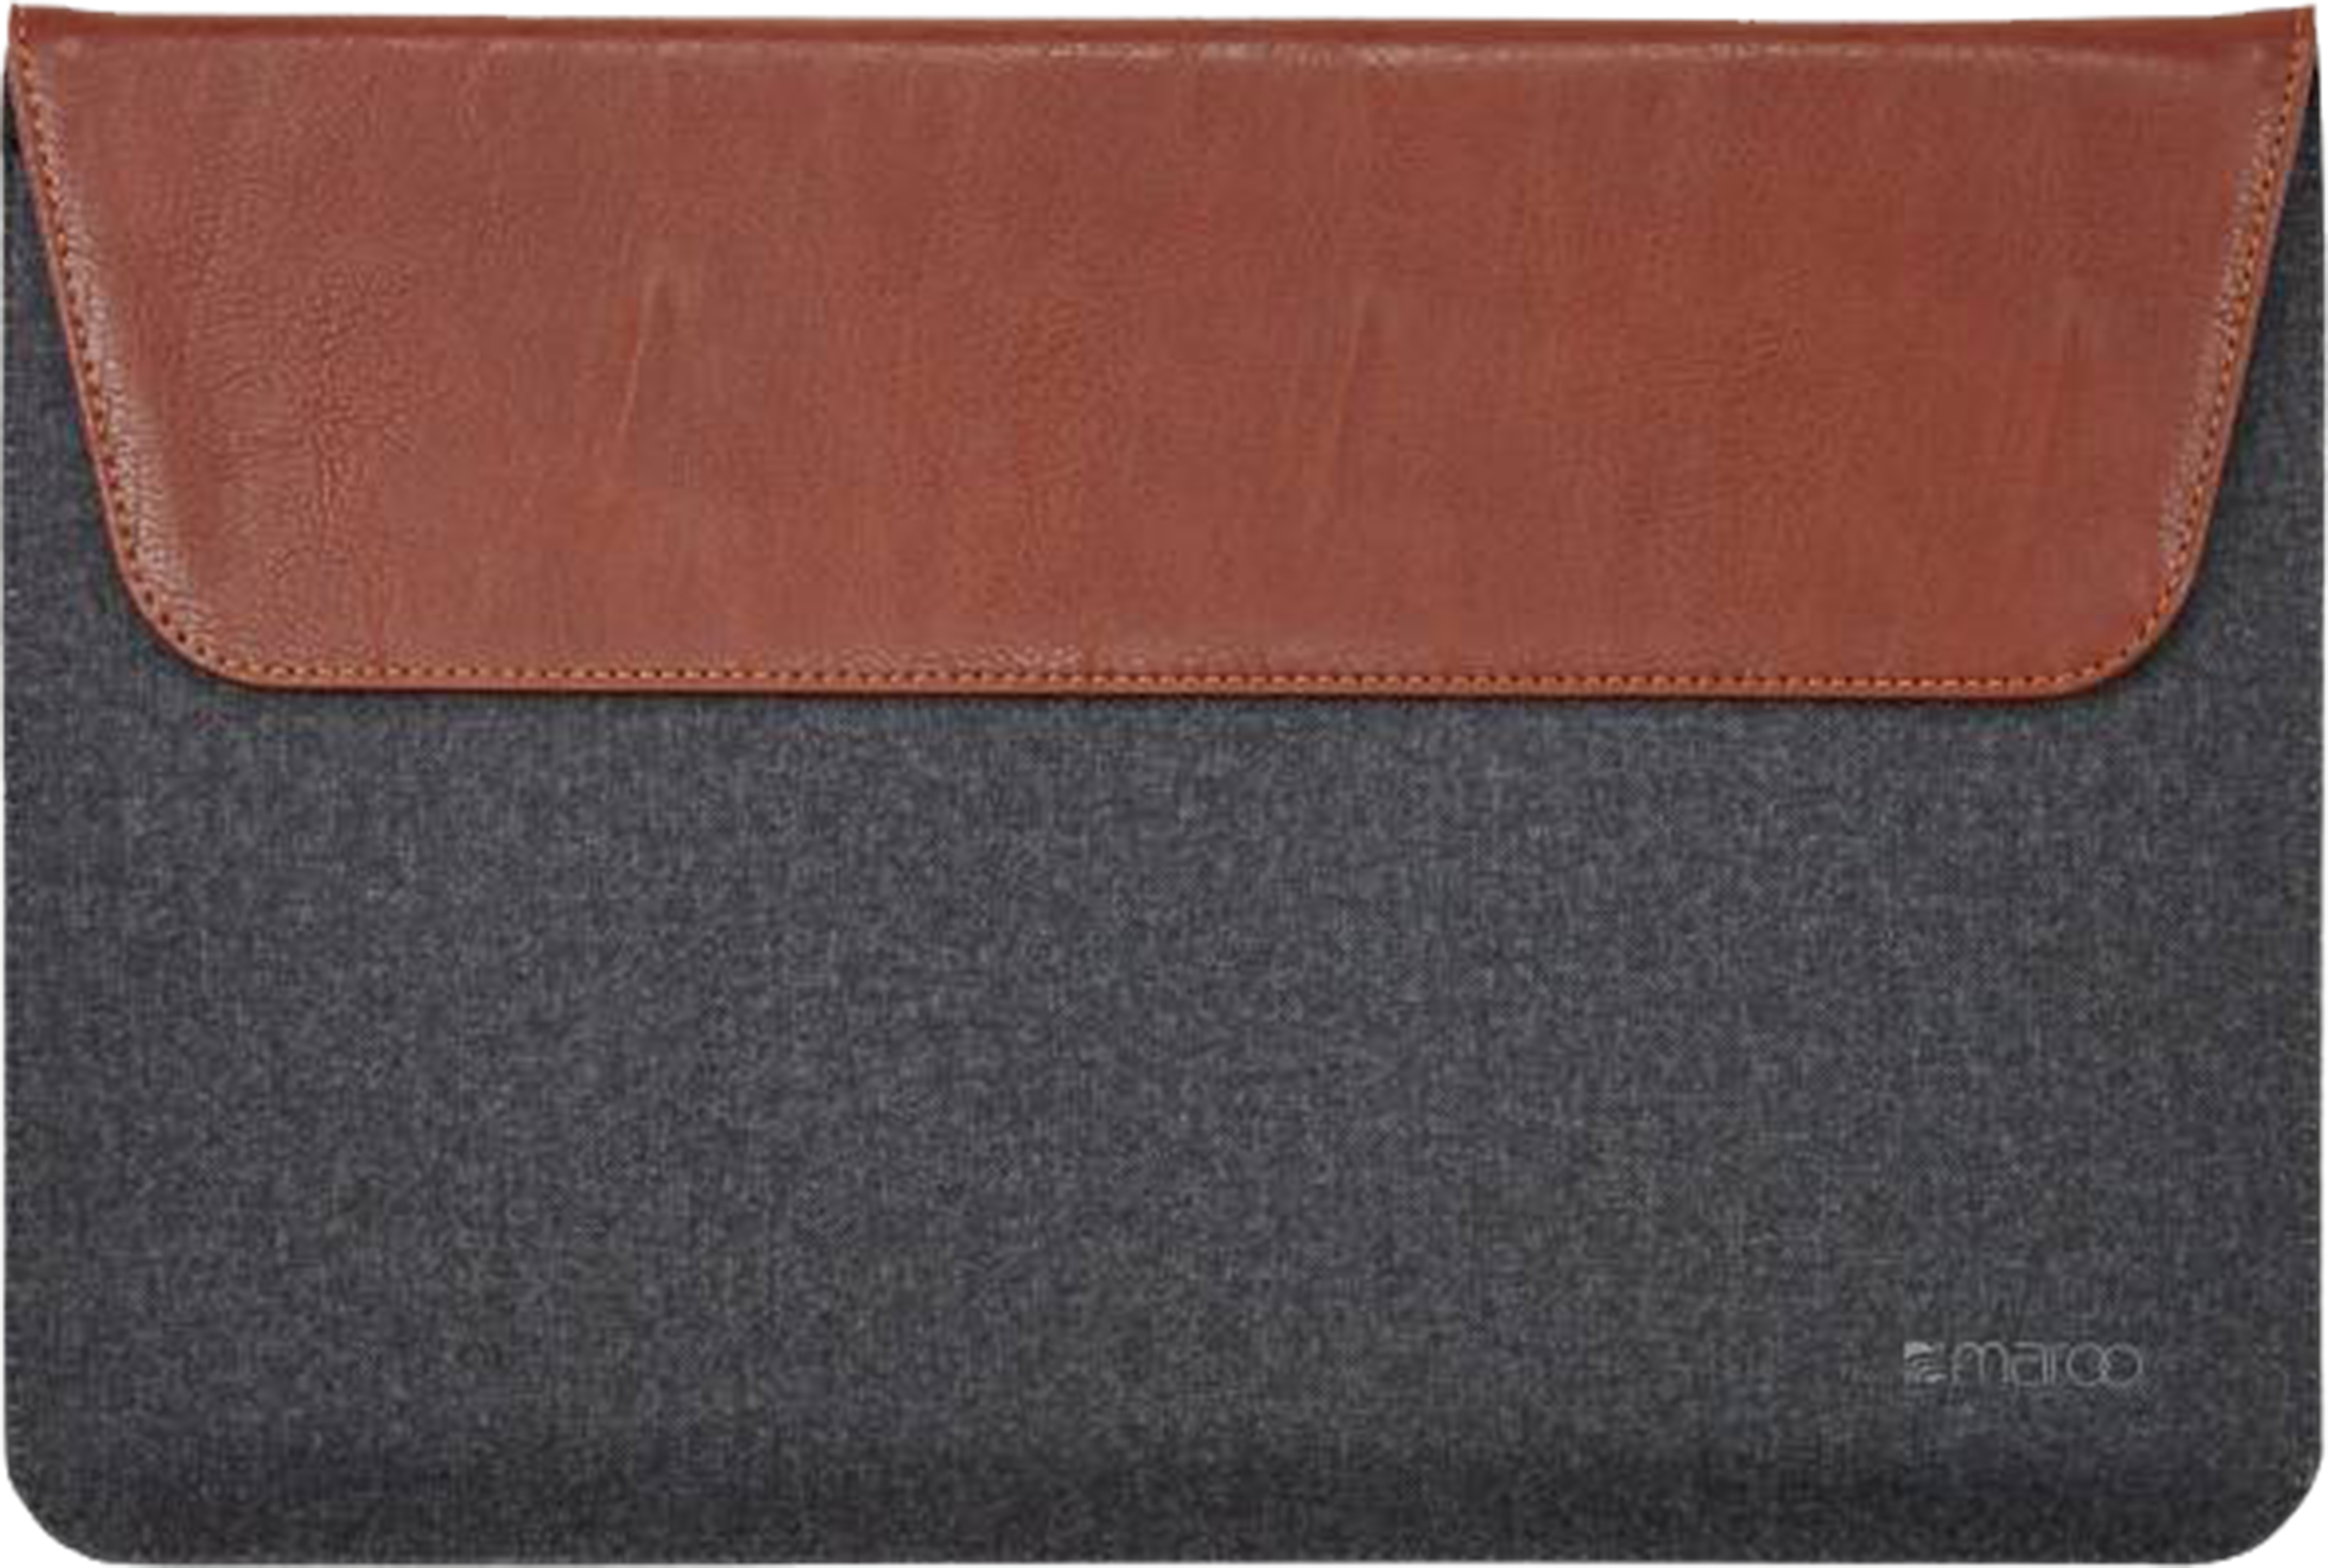 maroo-synthetic-leather-sleeve-for-surface-pro-dark-brown